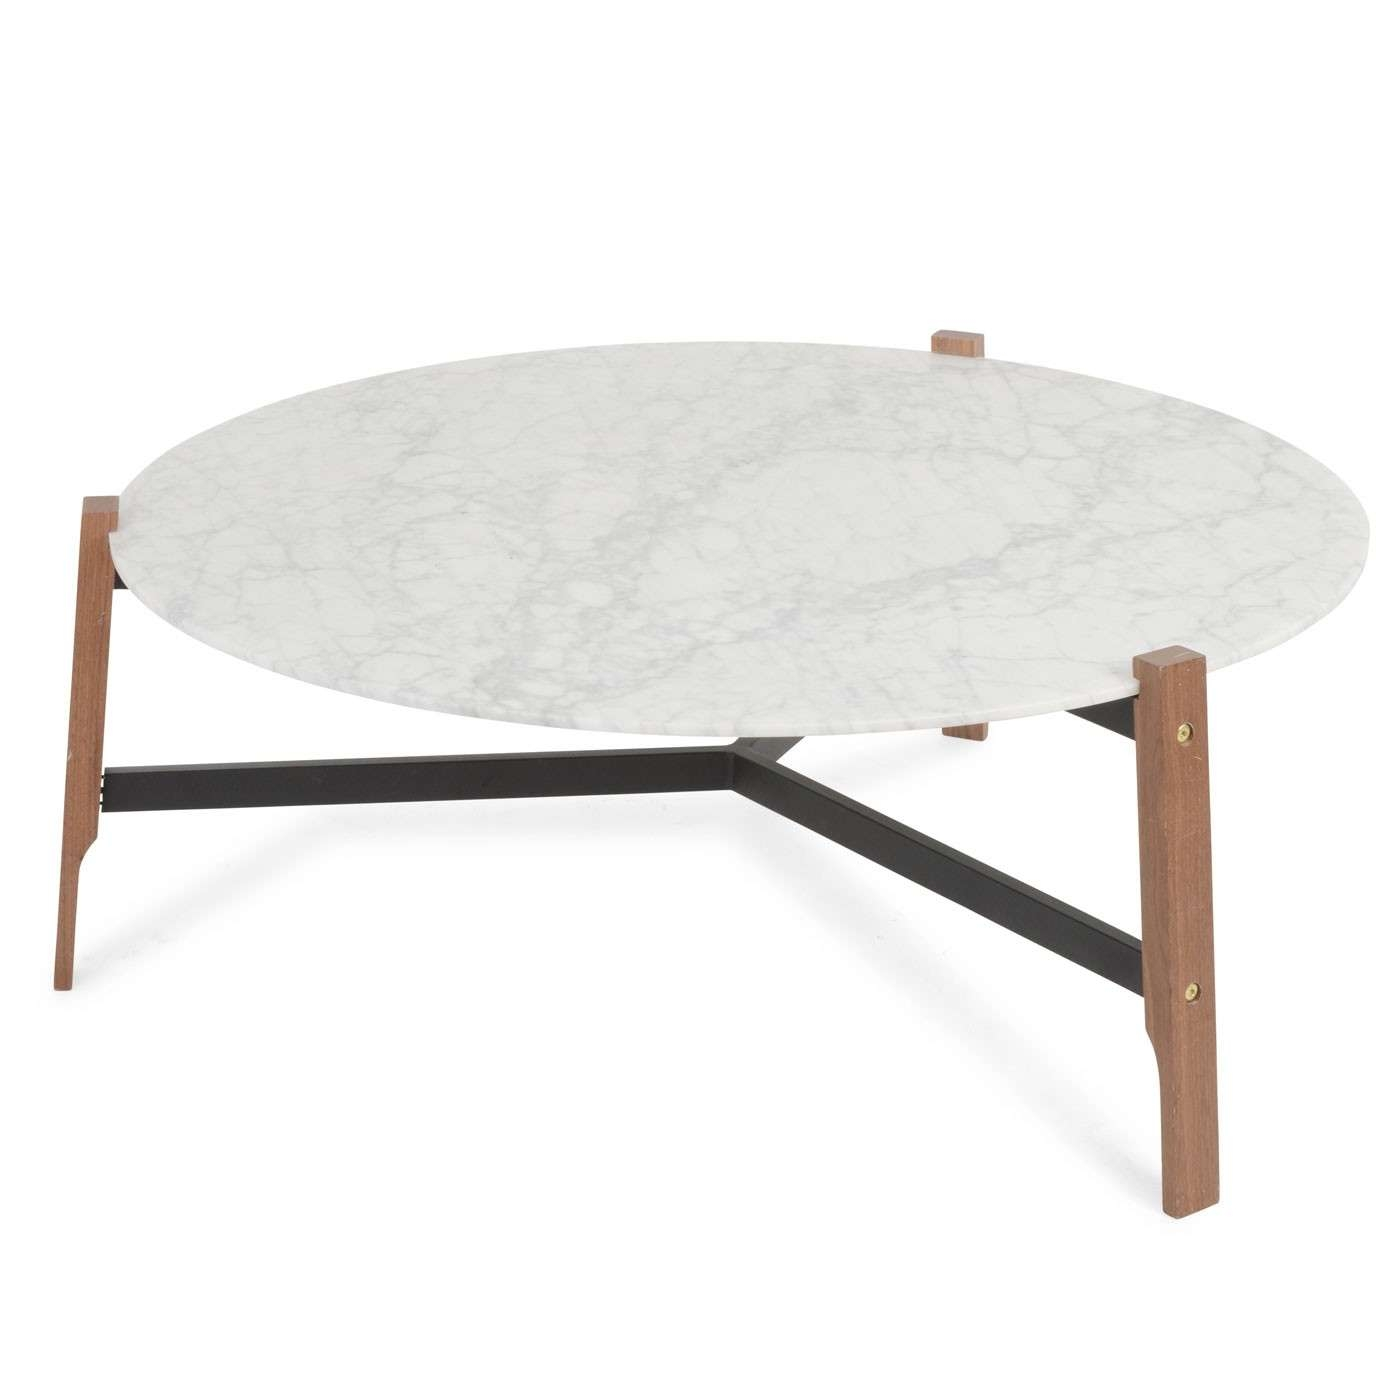 Glamorous Marble Coffee Table Vancouver Ideas White Marble Coffee With Regard To Best And Newest Small Marble Coffee Tables (View 11 of 20)